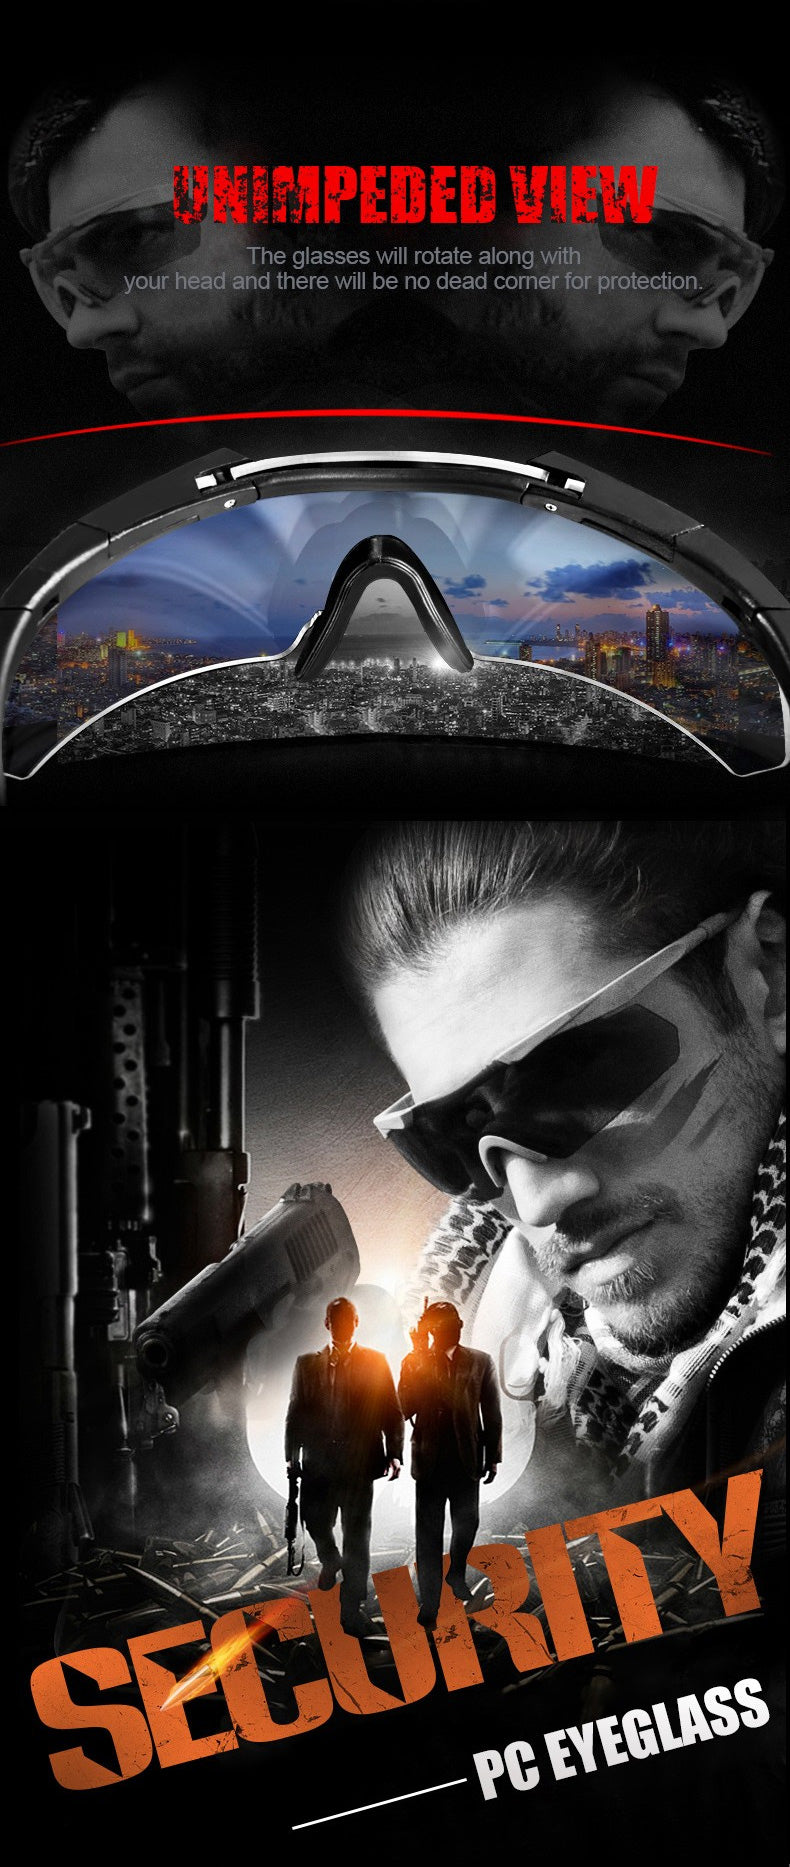 Eagle-Eye Tactical Goggles For Men Bullet Resistant Sunglasses For Outdoor Pursuits